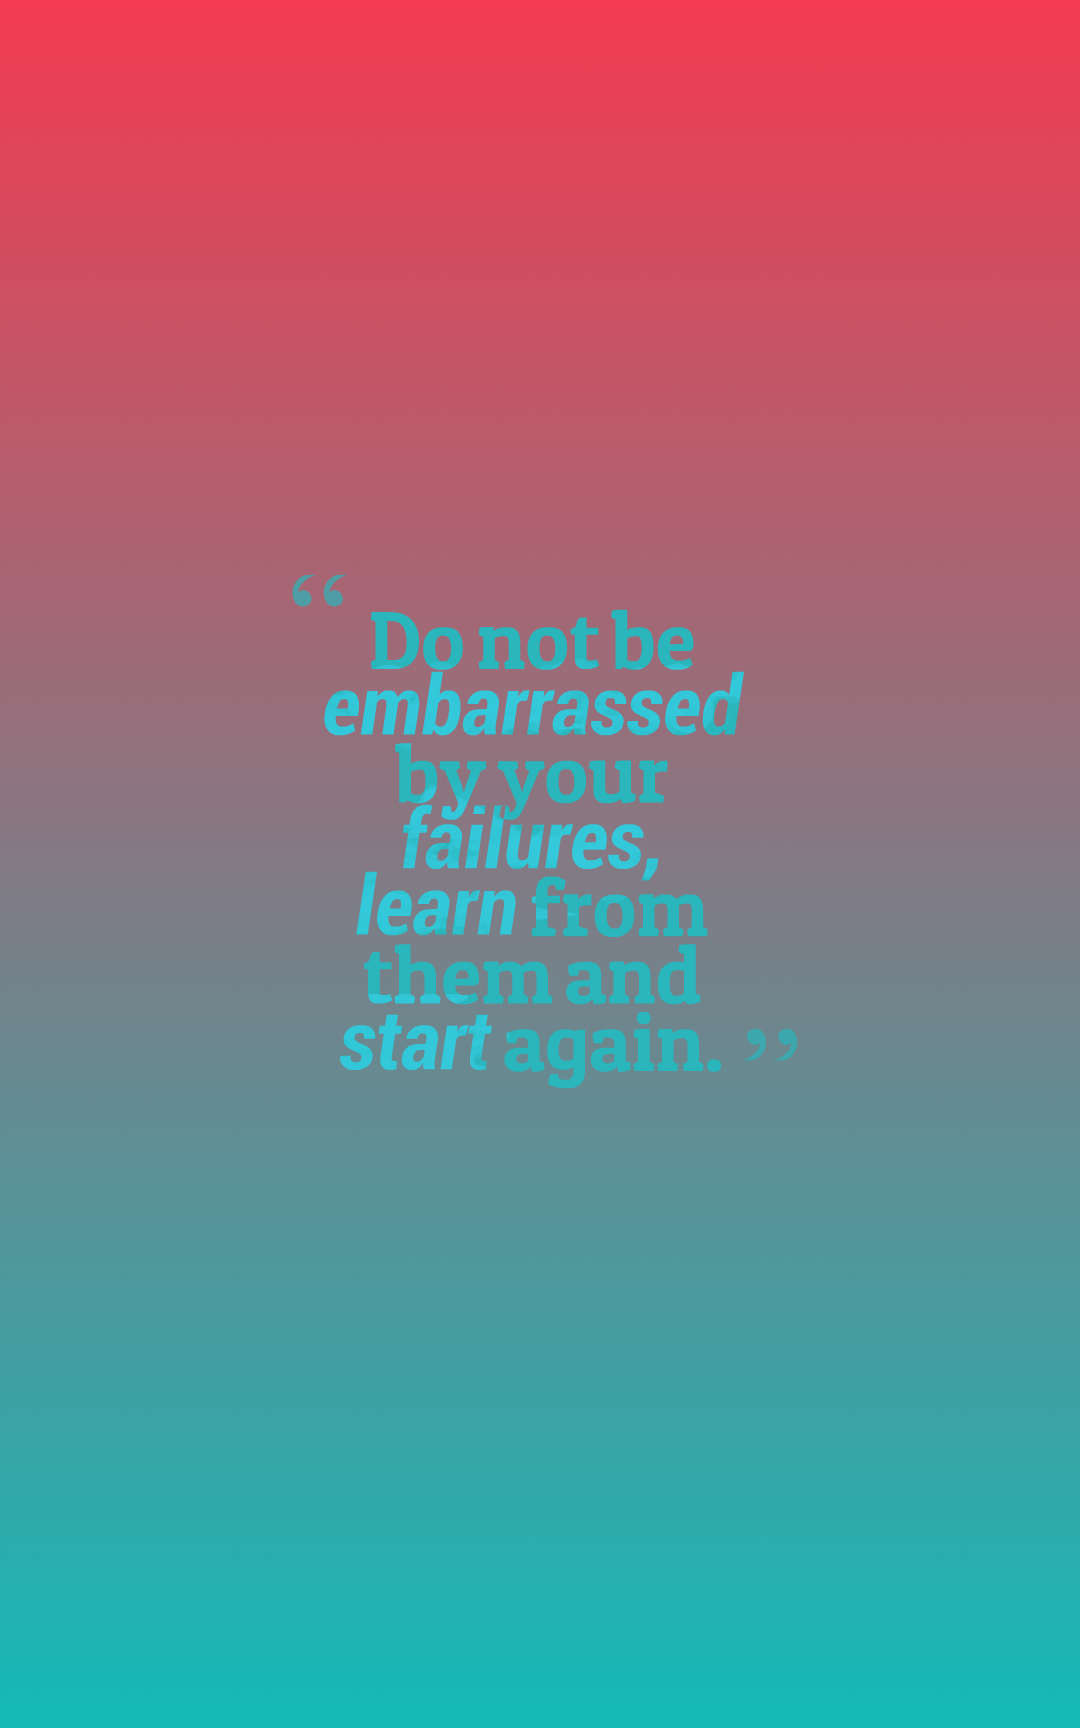 Quotes image of Do not be embarrassed by your failures, learn from them and start again.